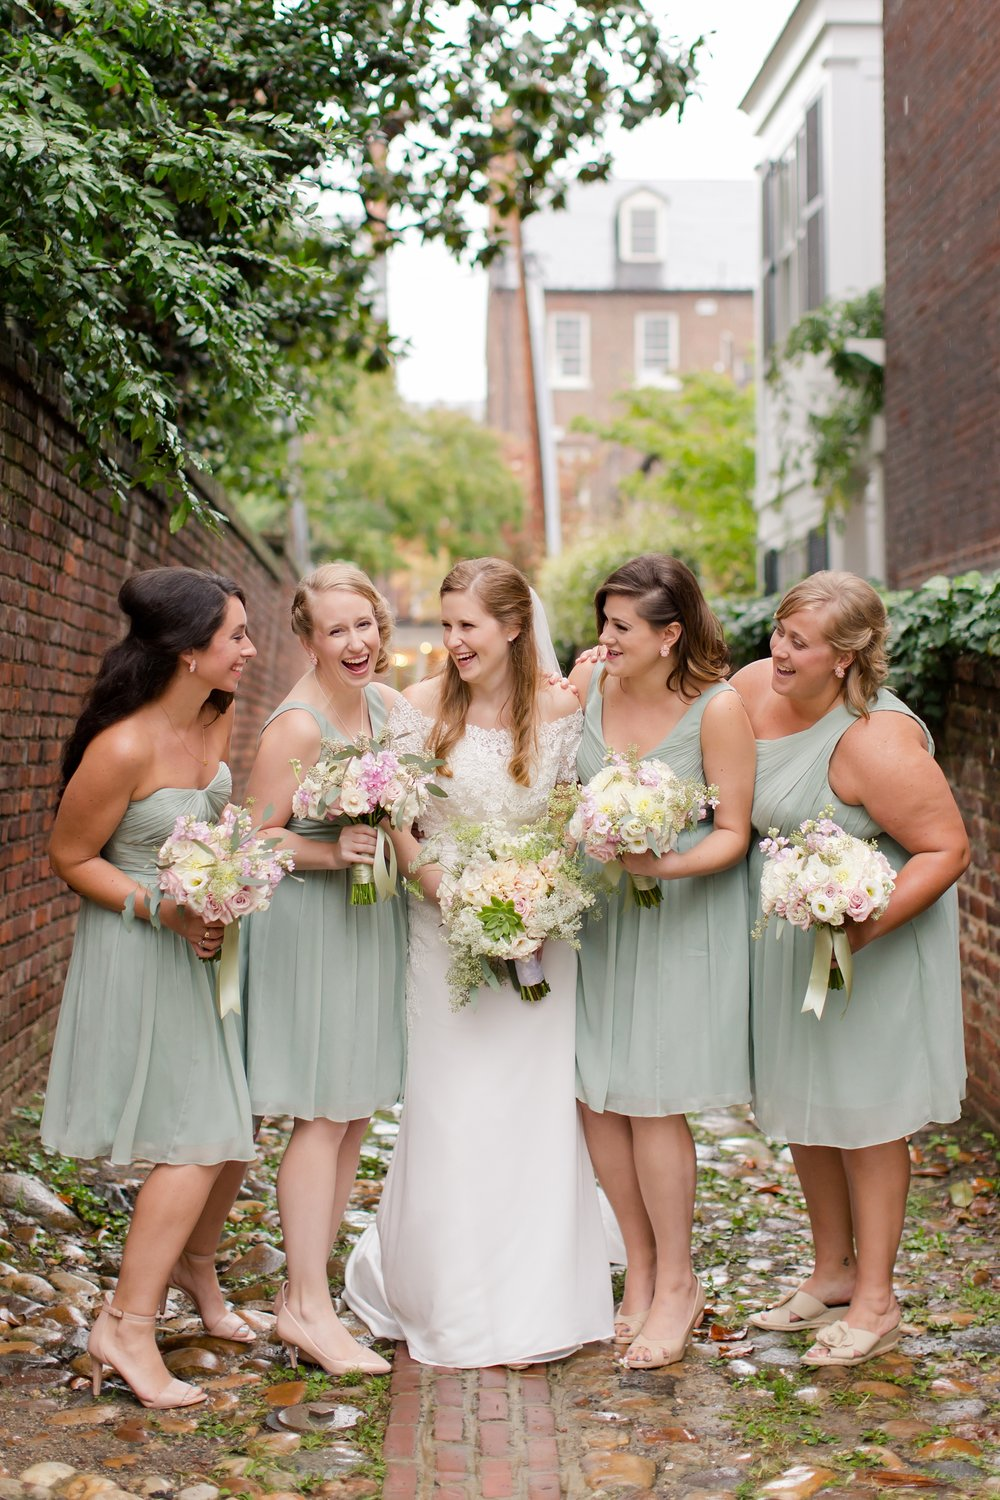 Martin 4-Bridal Party-1109_anna grace photography virginia wedding photographer old town alexandria athenaeum wedding photo.jpg